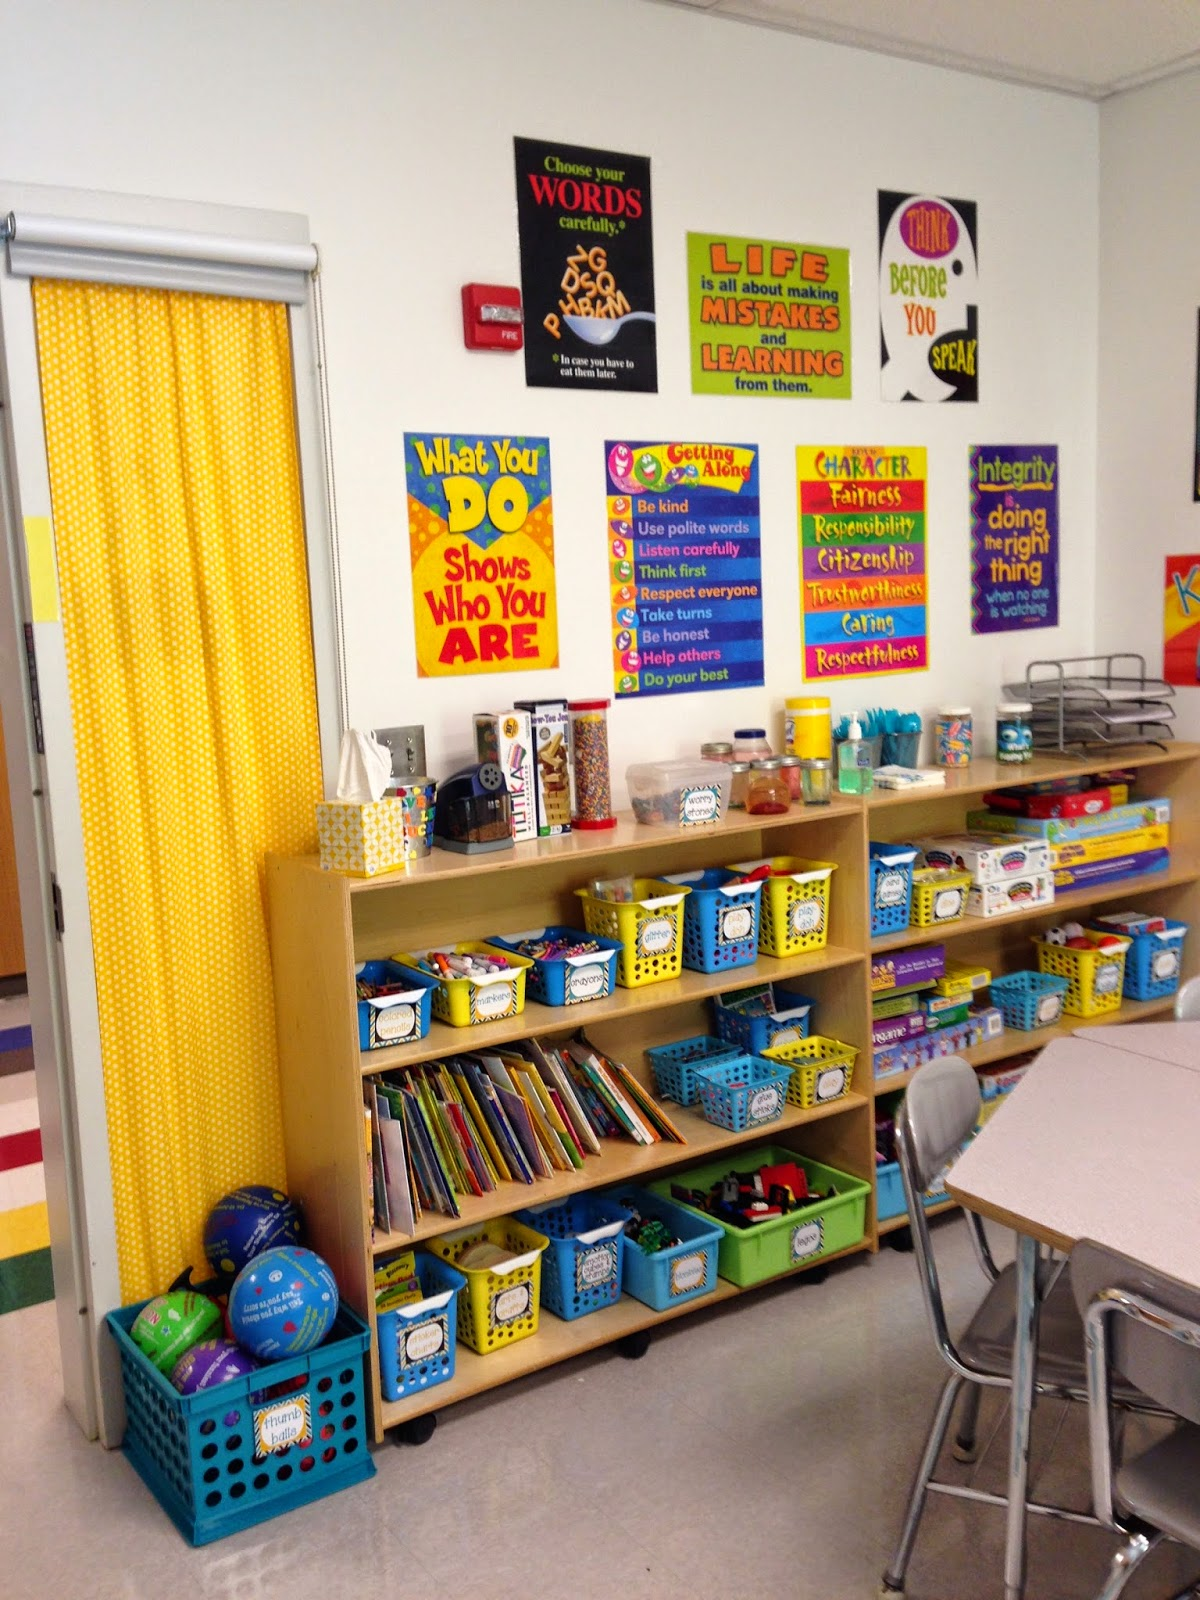 Creative Elementary School Counselor: My Office for the ...